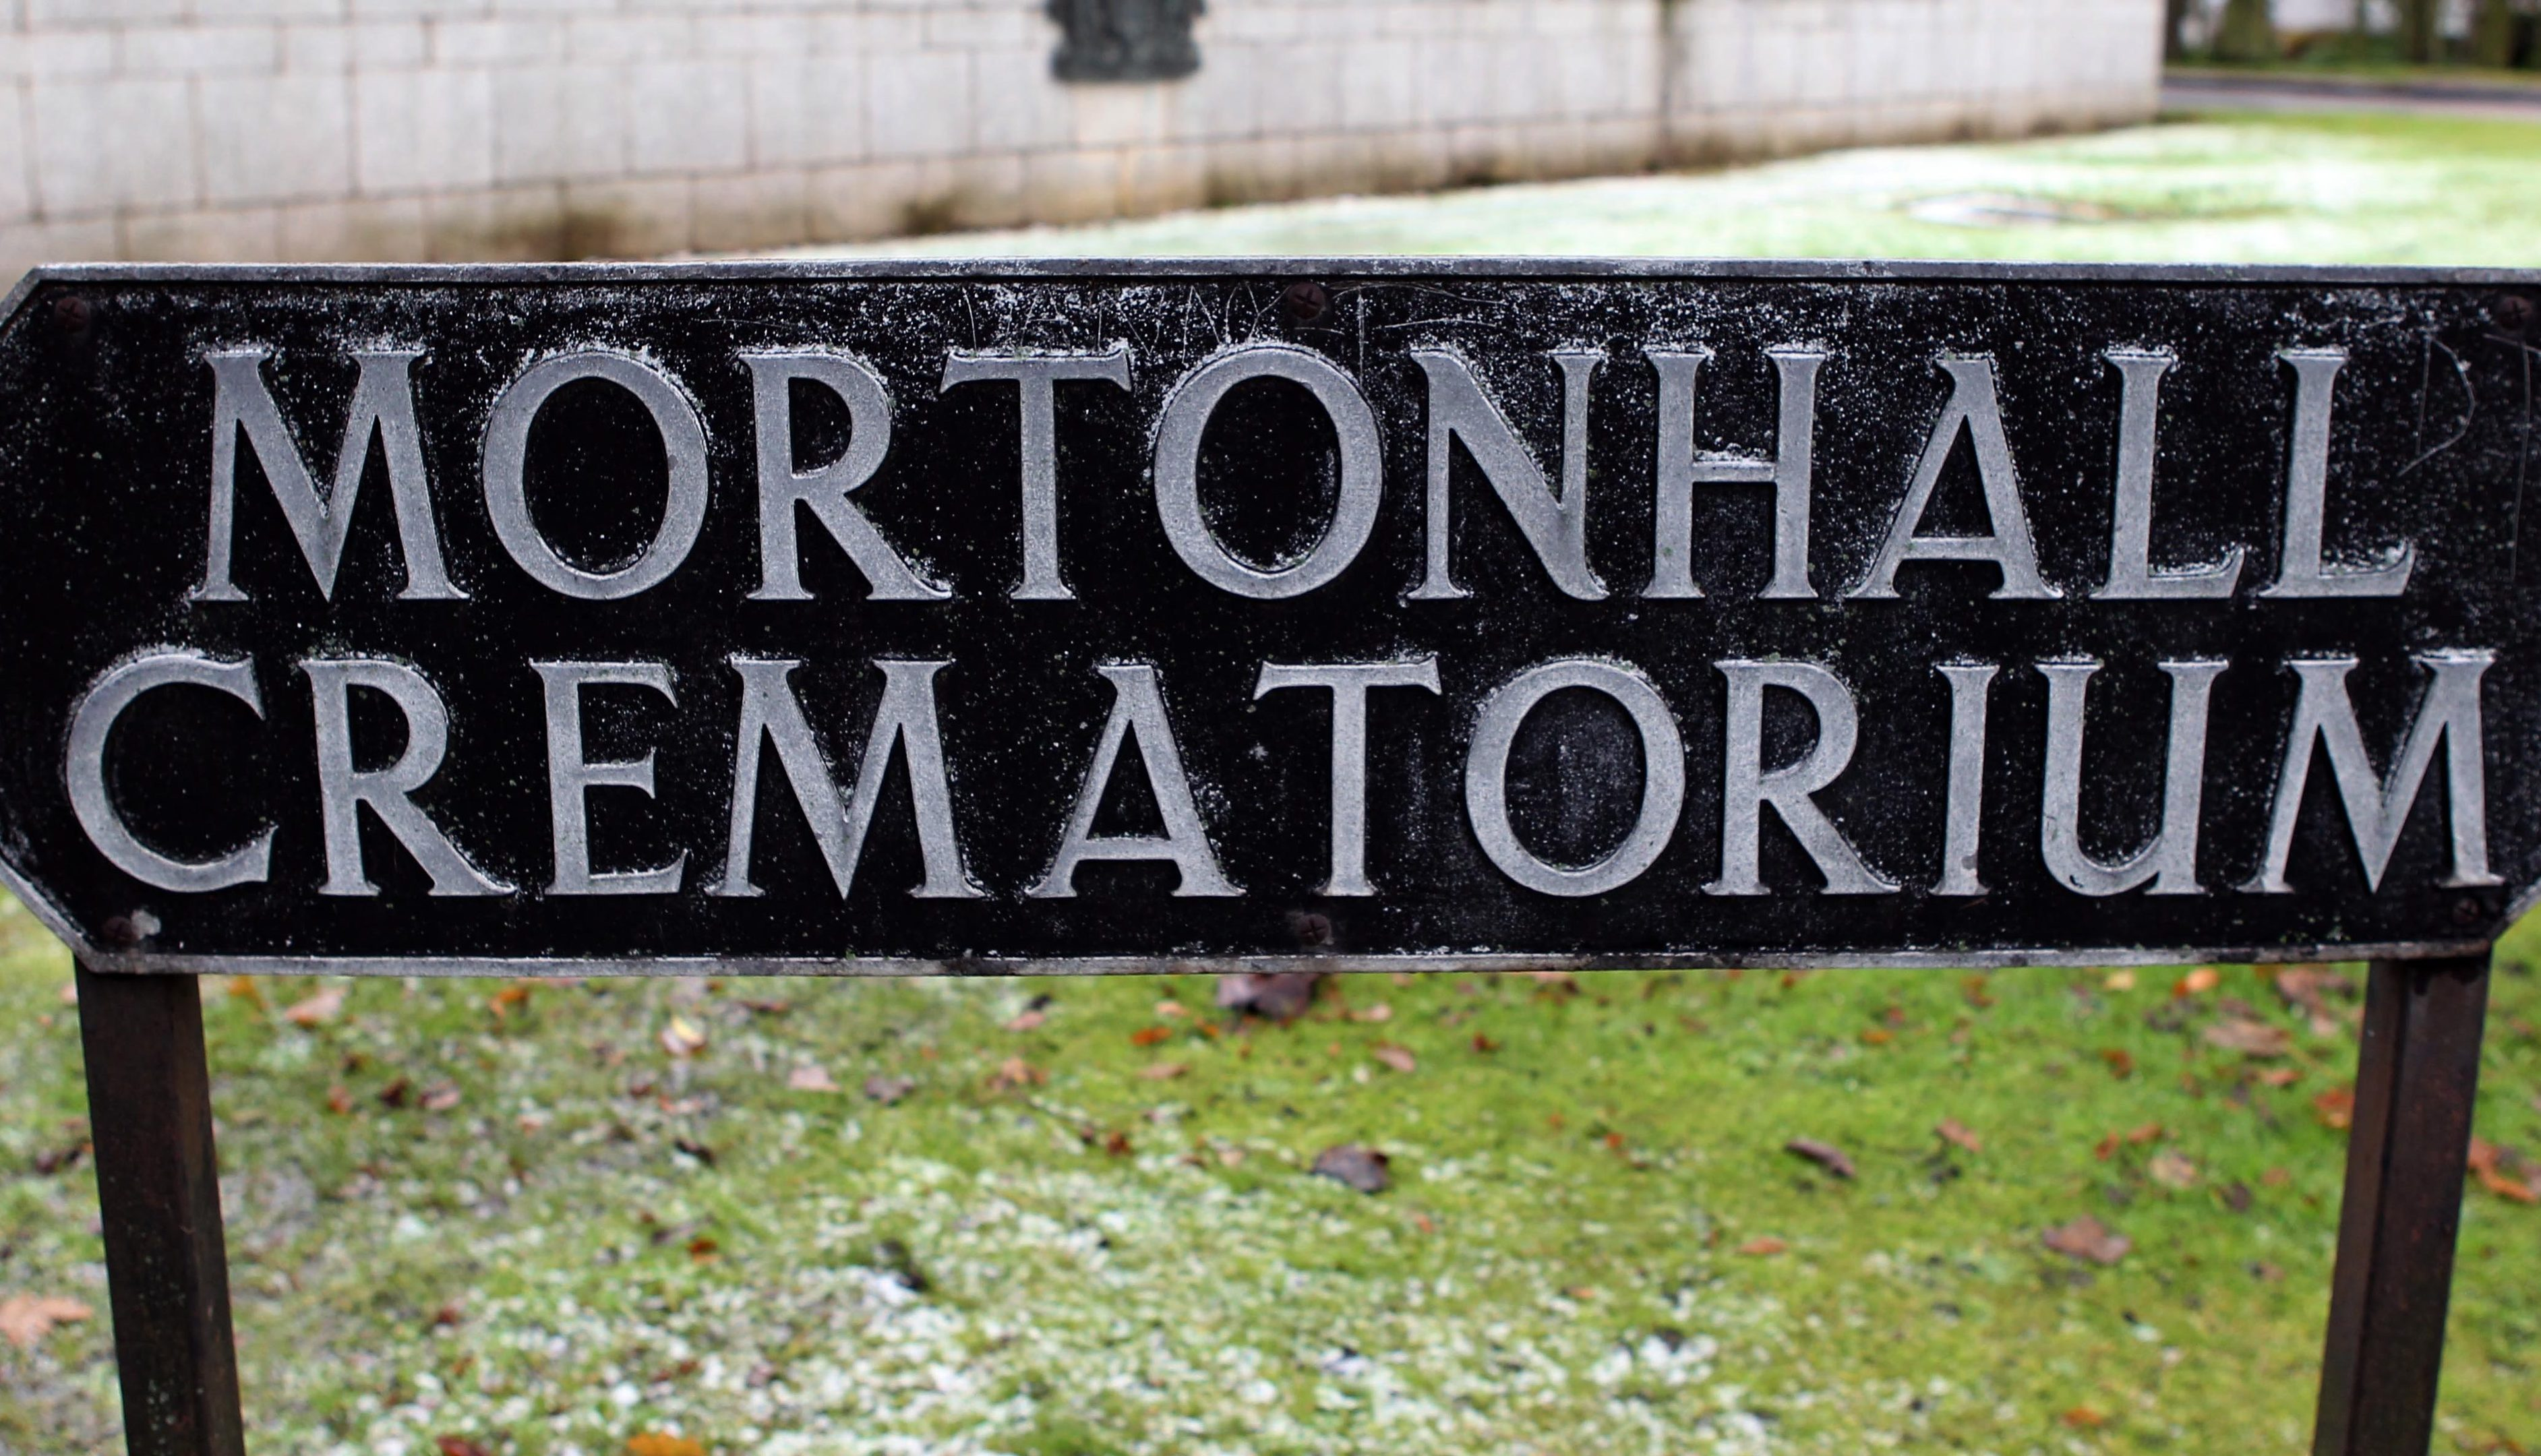 The report was ordered after the Mortonhall scandal.